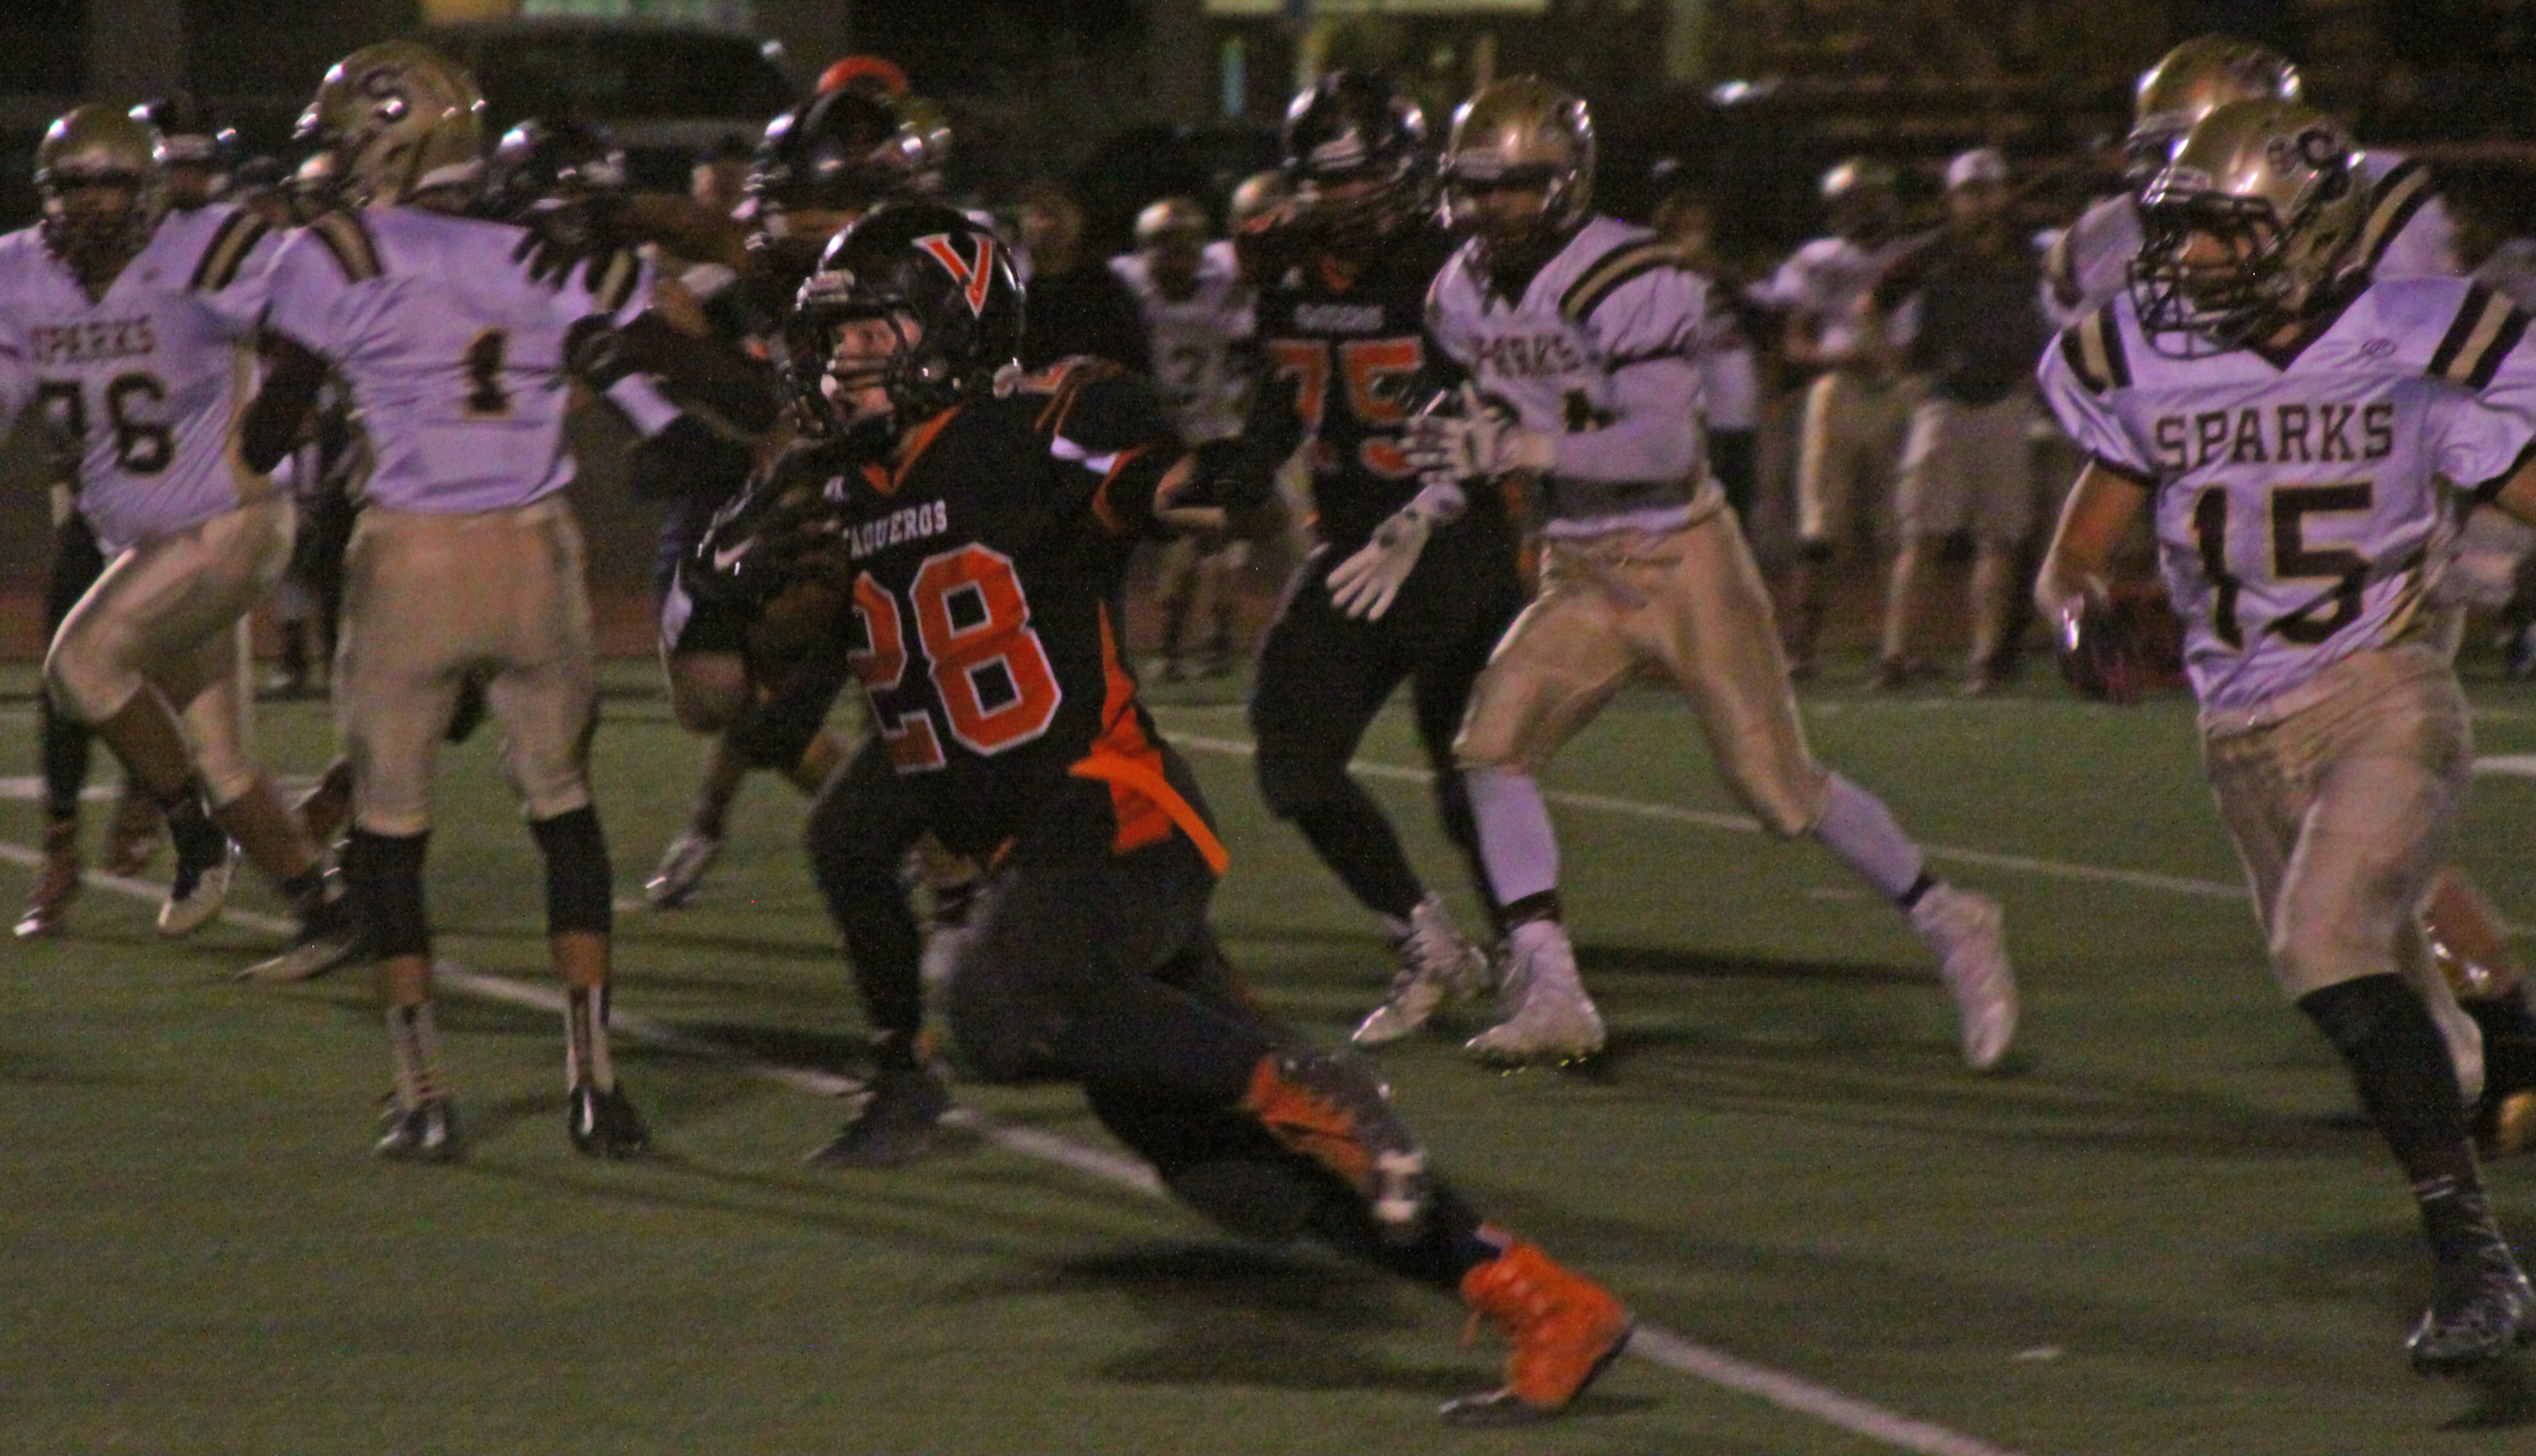 Robert Perea, The Fernley Reporter Fernley's Willy Pritchard breaks loose for a long run Friday night against Sparks.